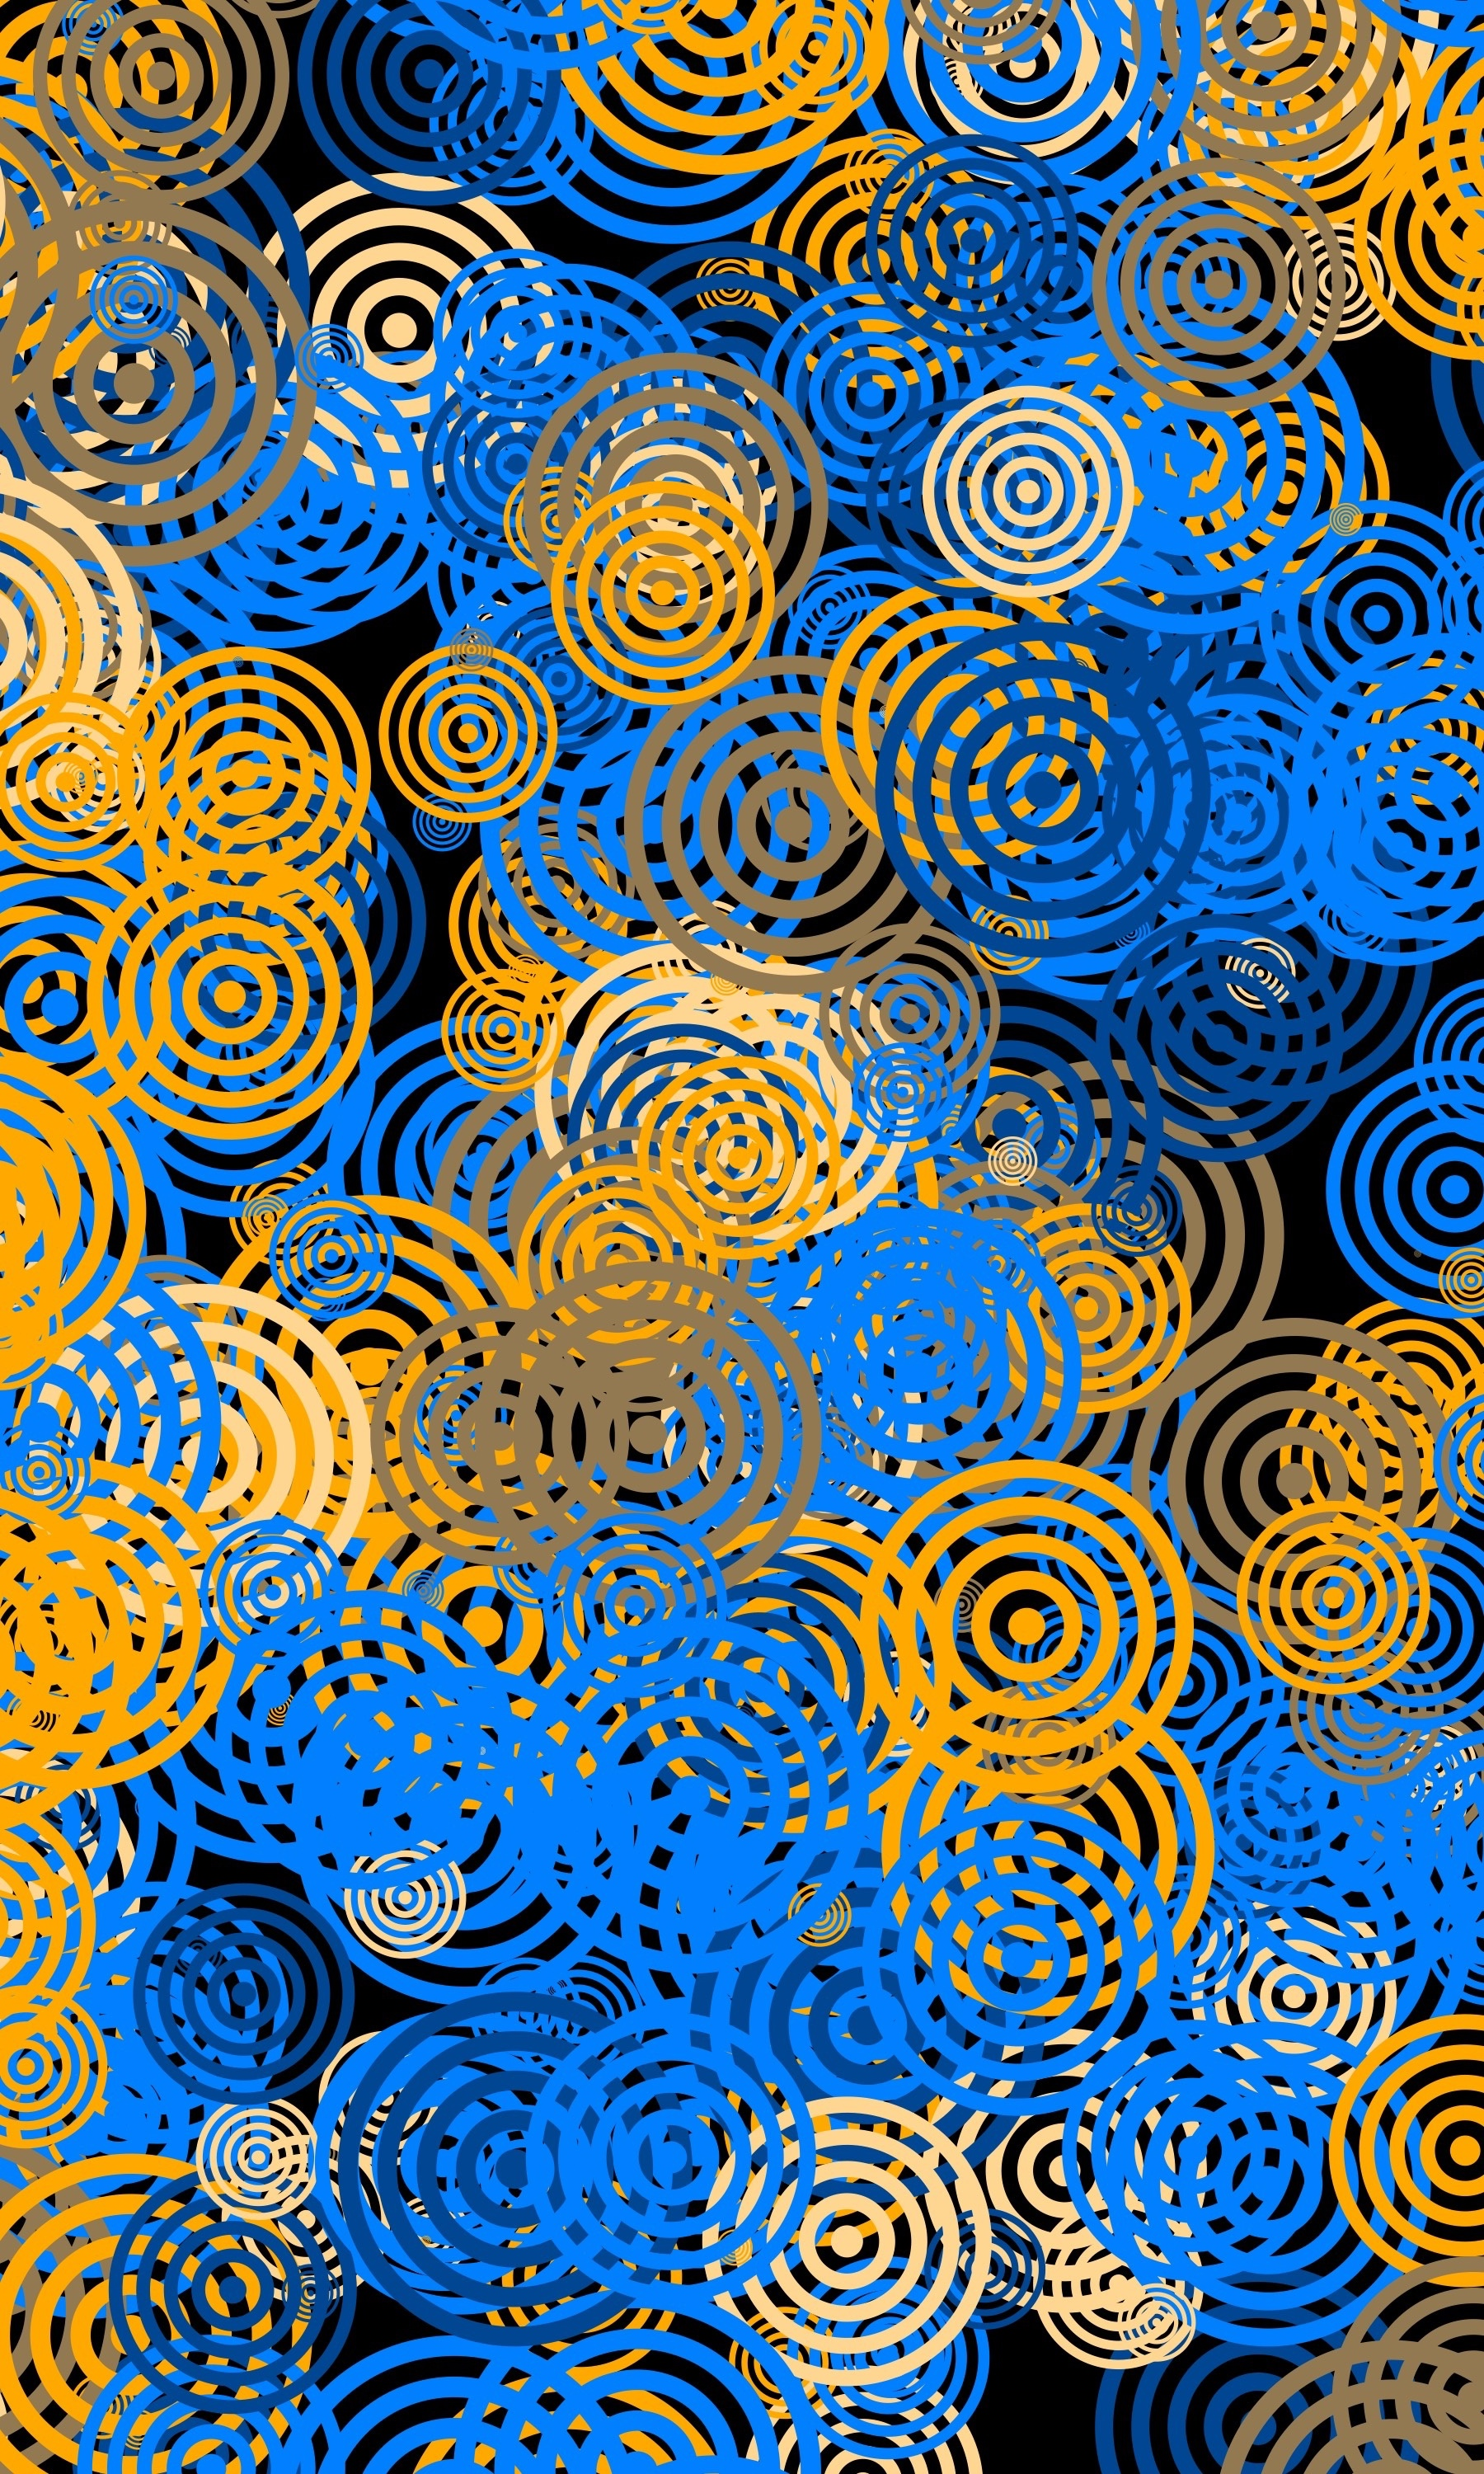 148300 download wallpaper Textures, Texture, Circles, Patterns screensavers and pictures for free